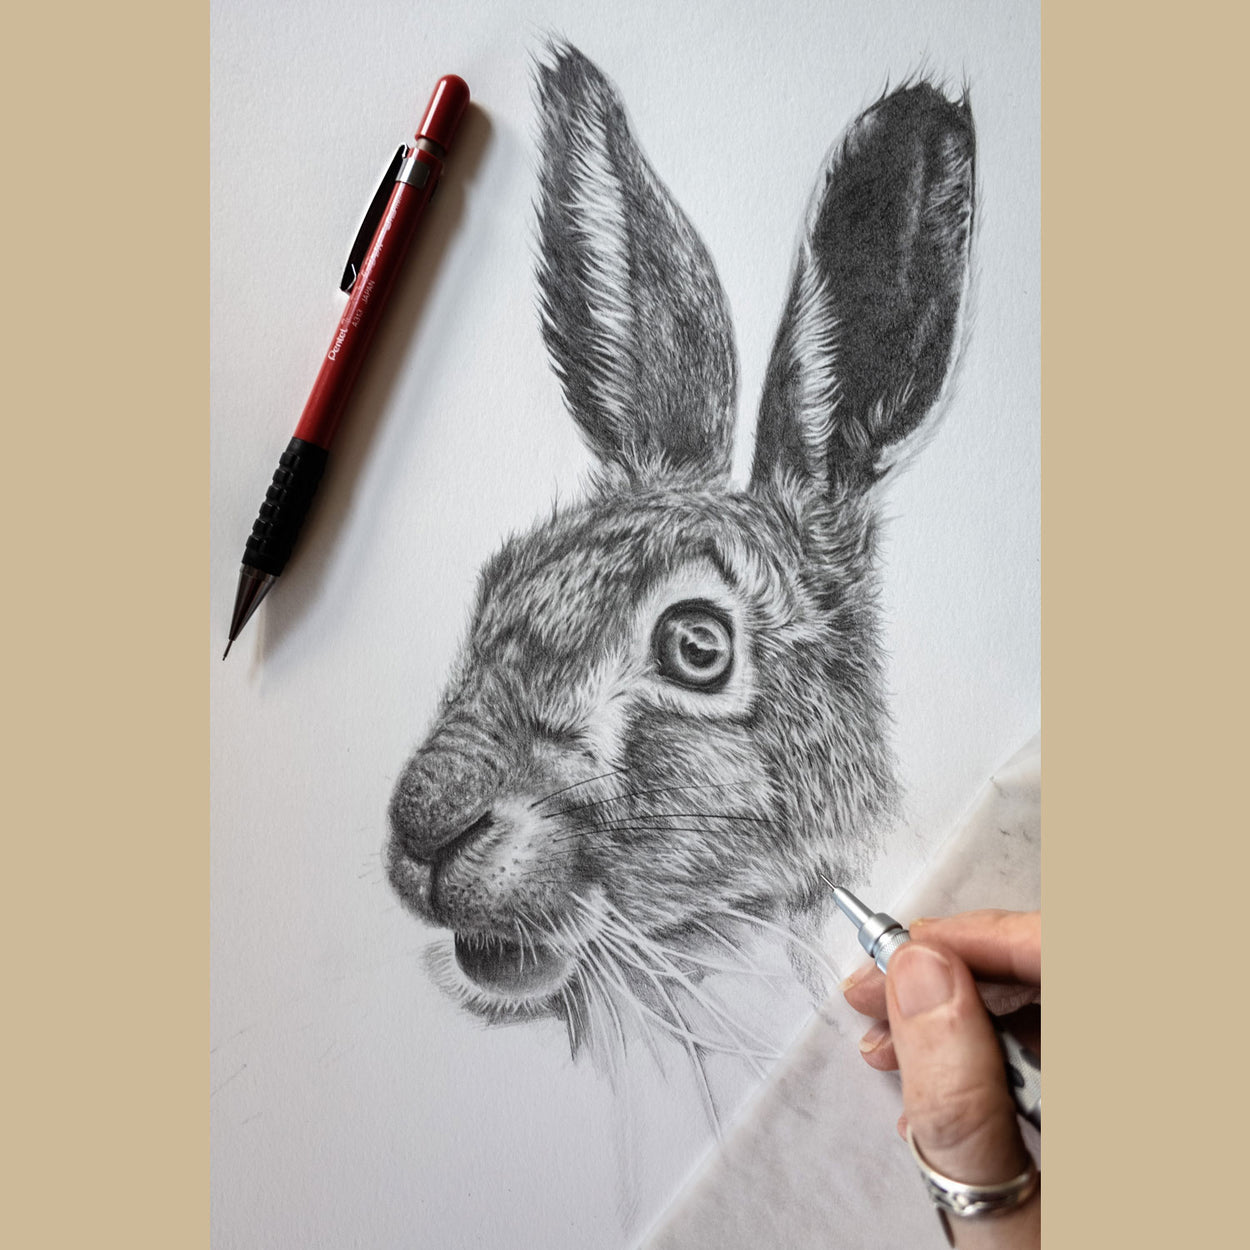 Hare Pencil Drawing in Progress - The Thriving Wild